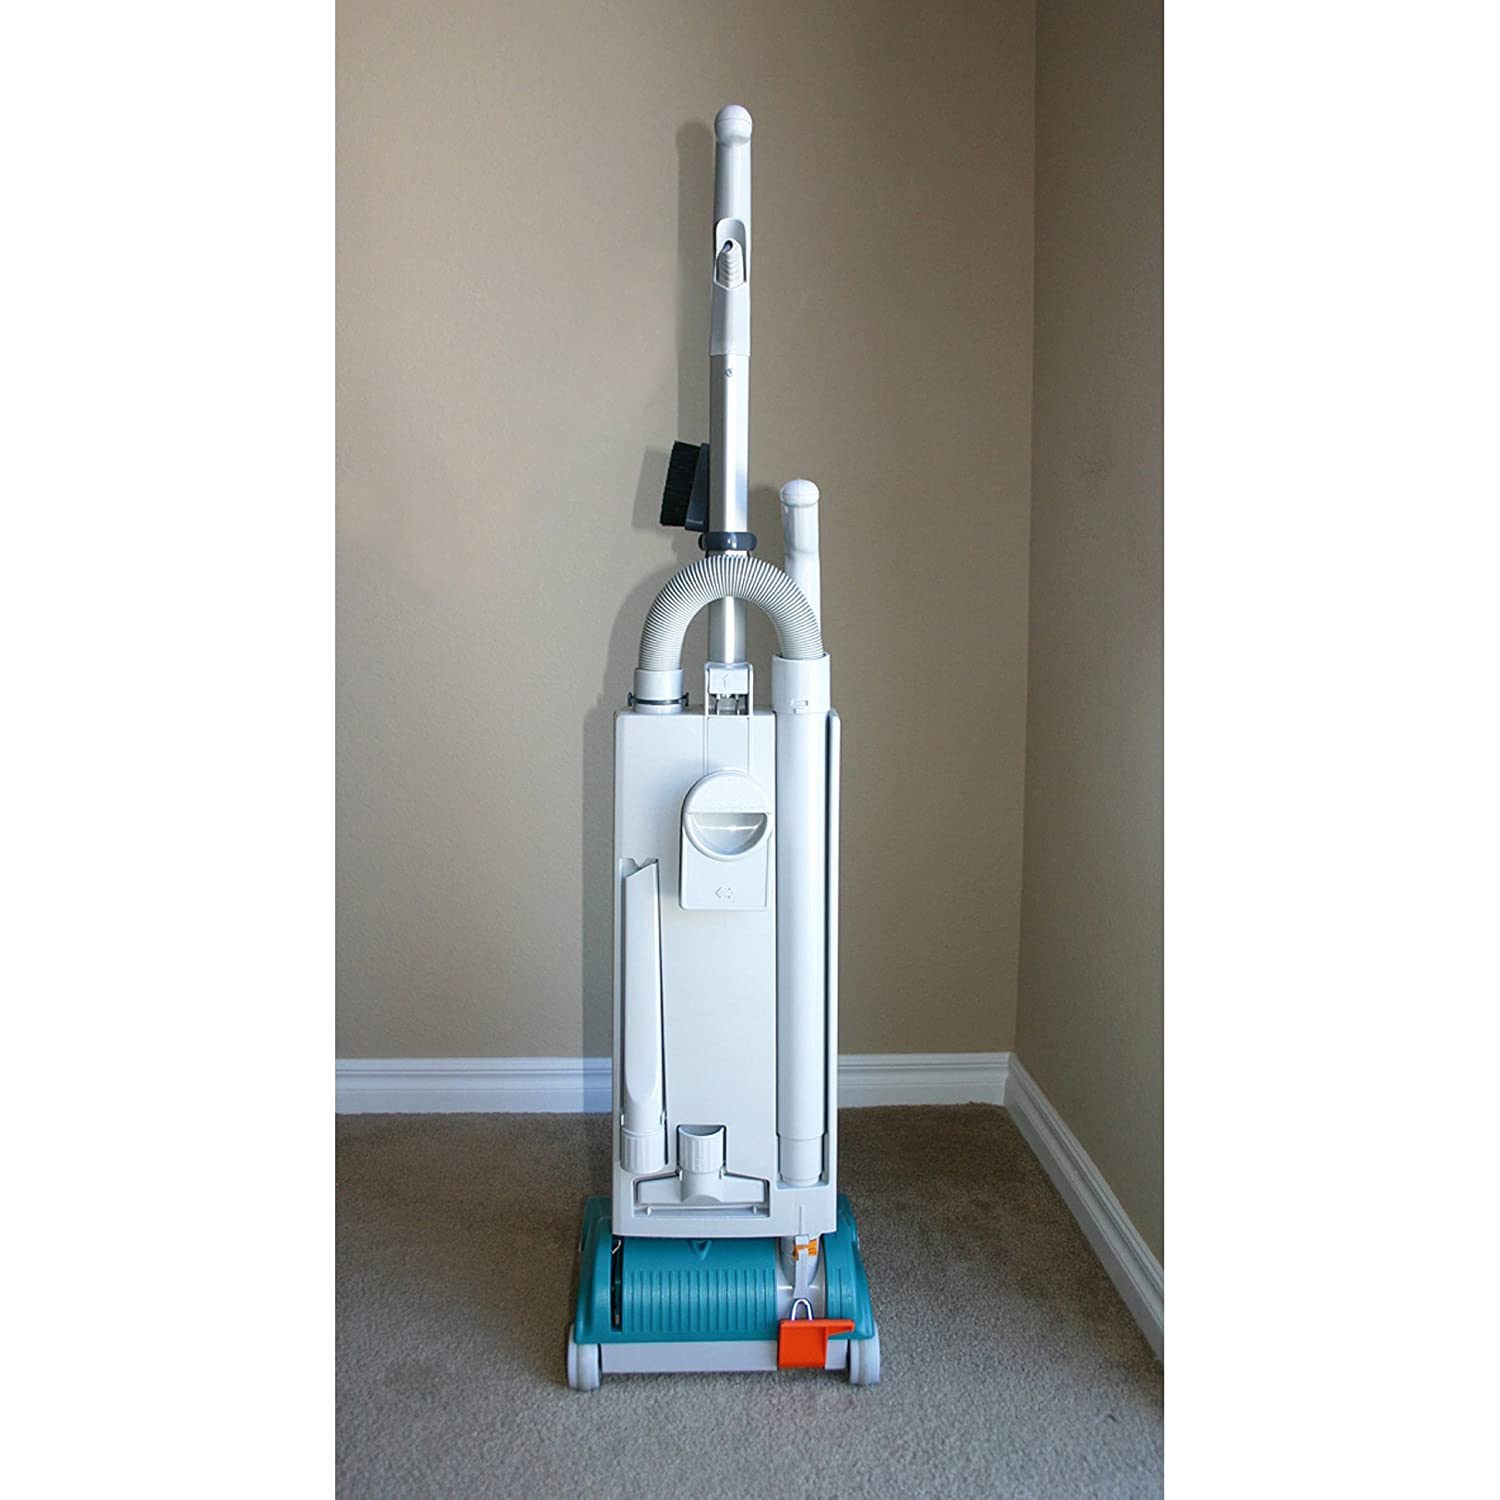 Sebo vacuum cleaners at bed bath and beyond - Amazon Com Sebo 9591at Essential G1 Upright Vacuum With 12 Inch Power Head Light Gray And Teal Corded Household Upright Vacuums